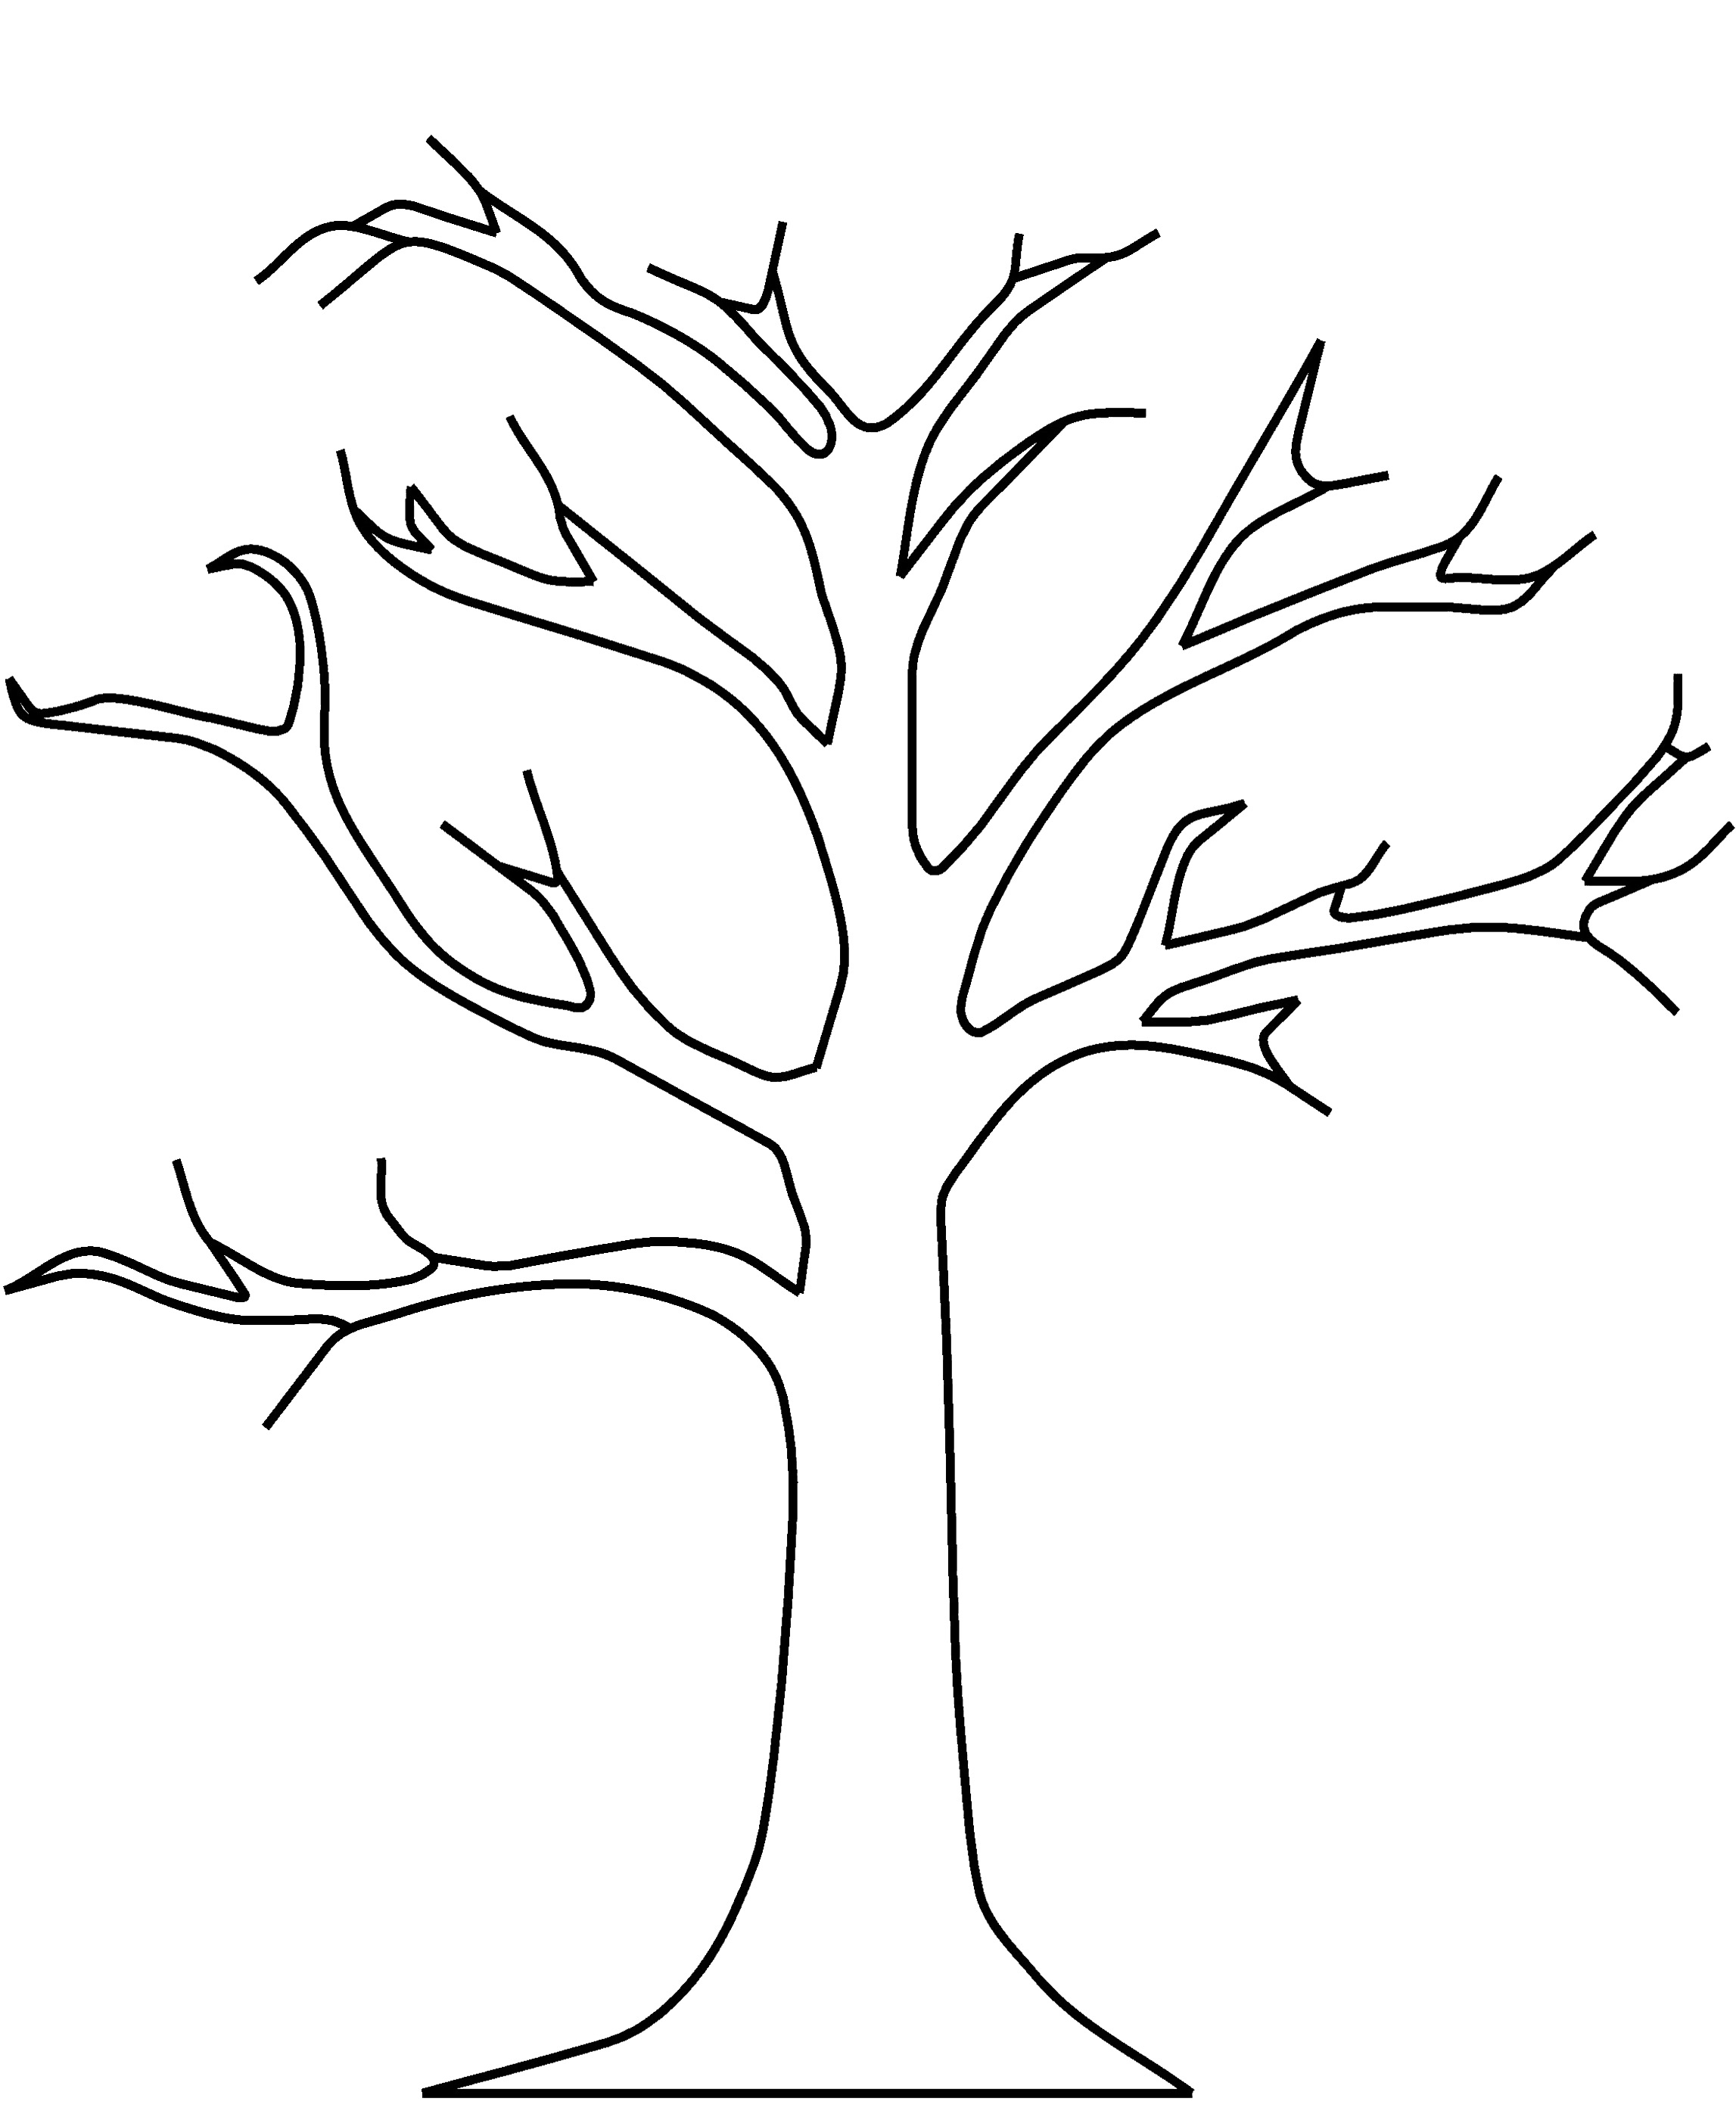 Tree-Coloring-Pages-09